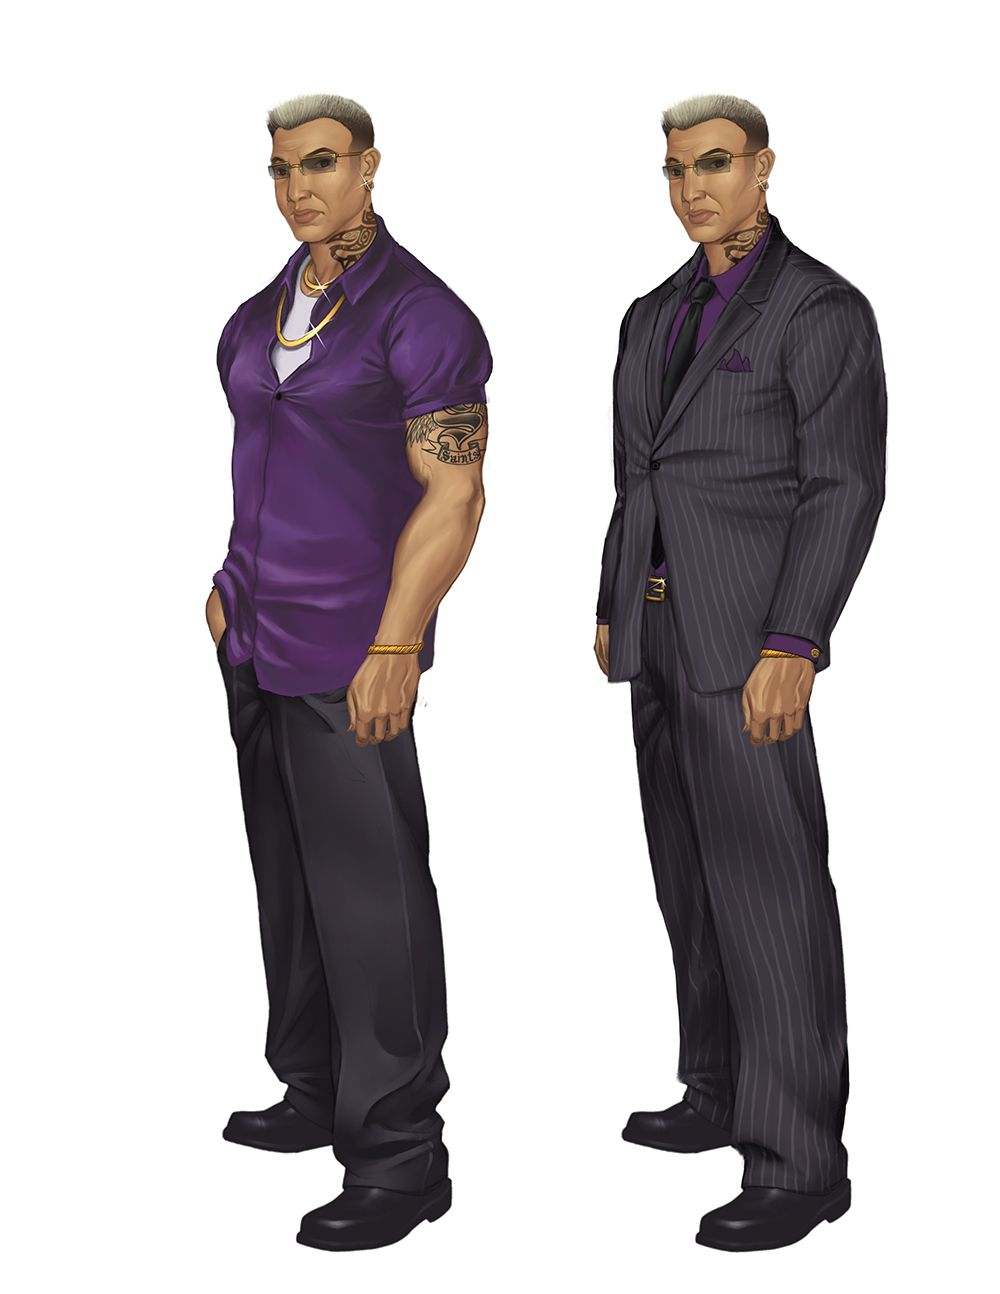 saints row 2 how to get a girlfriend